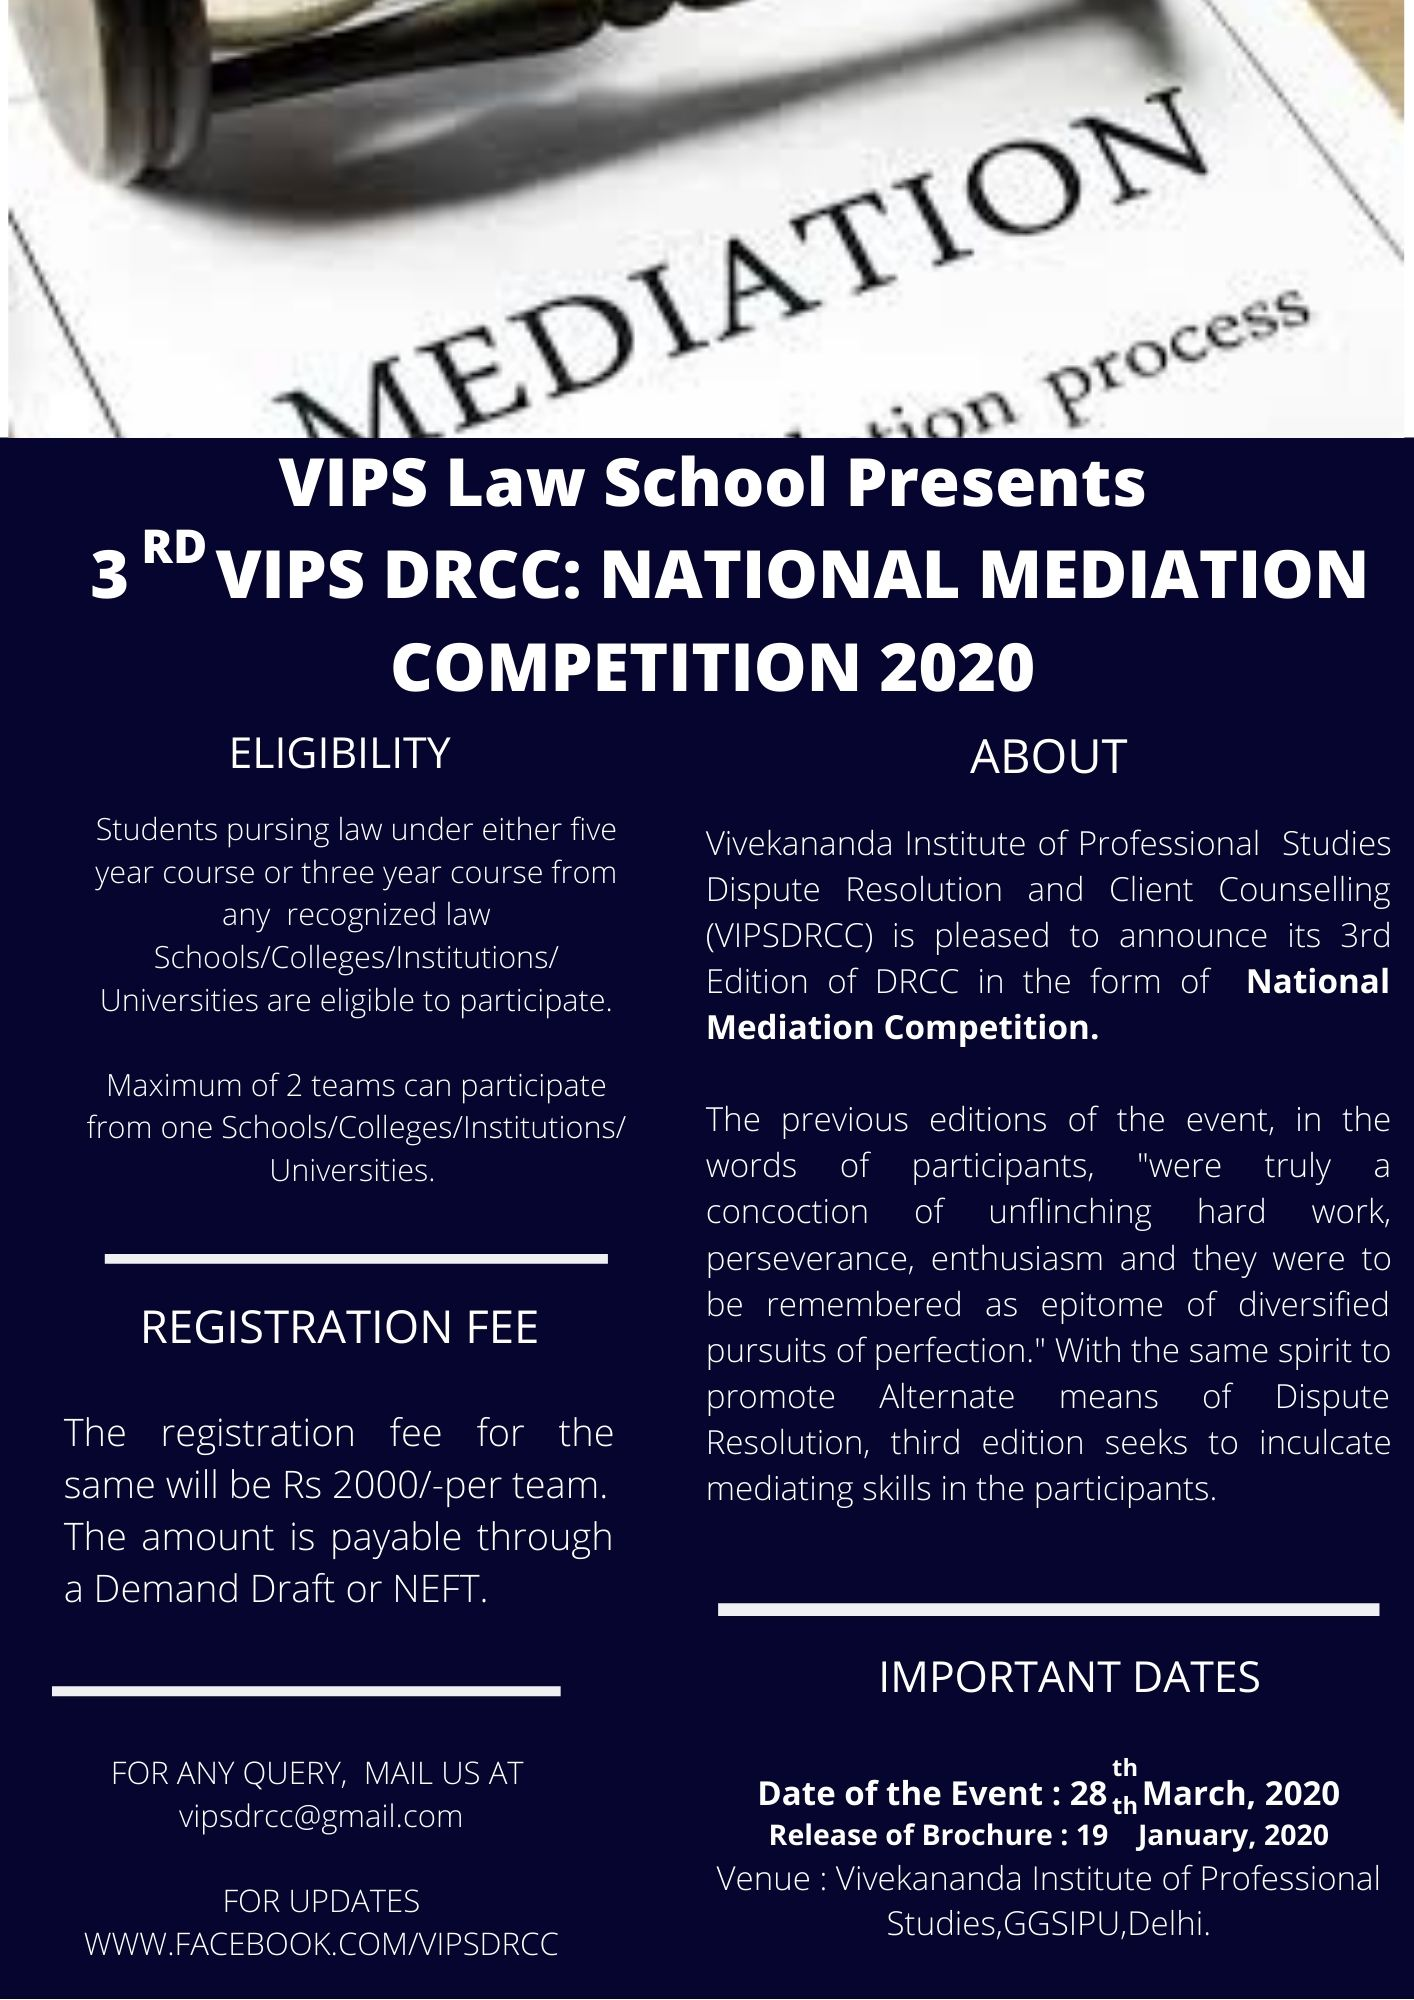 3rd VIPS DRCC's National Mediation Competition 2020